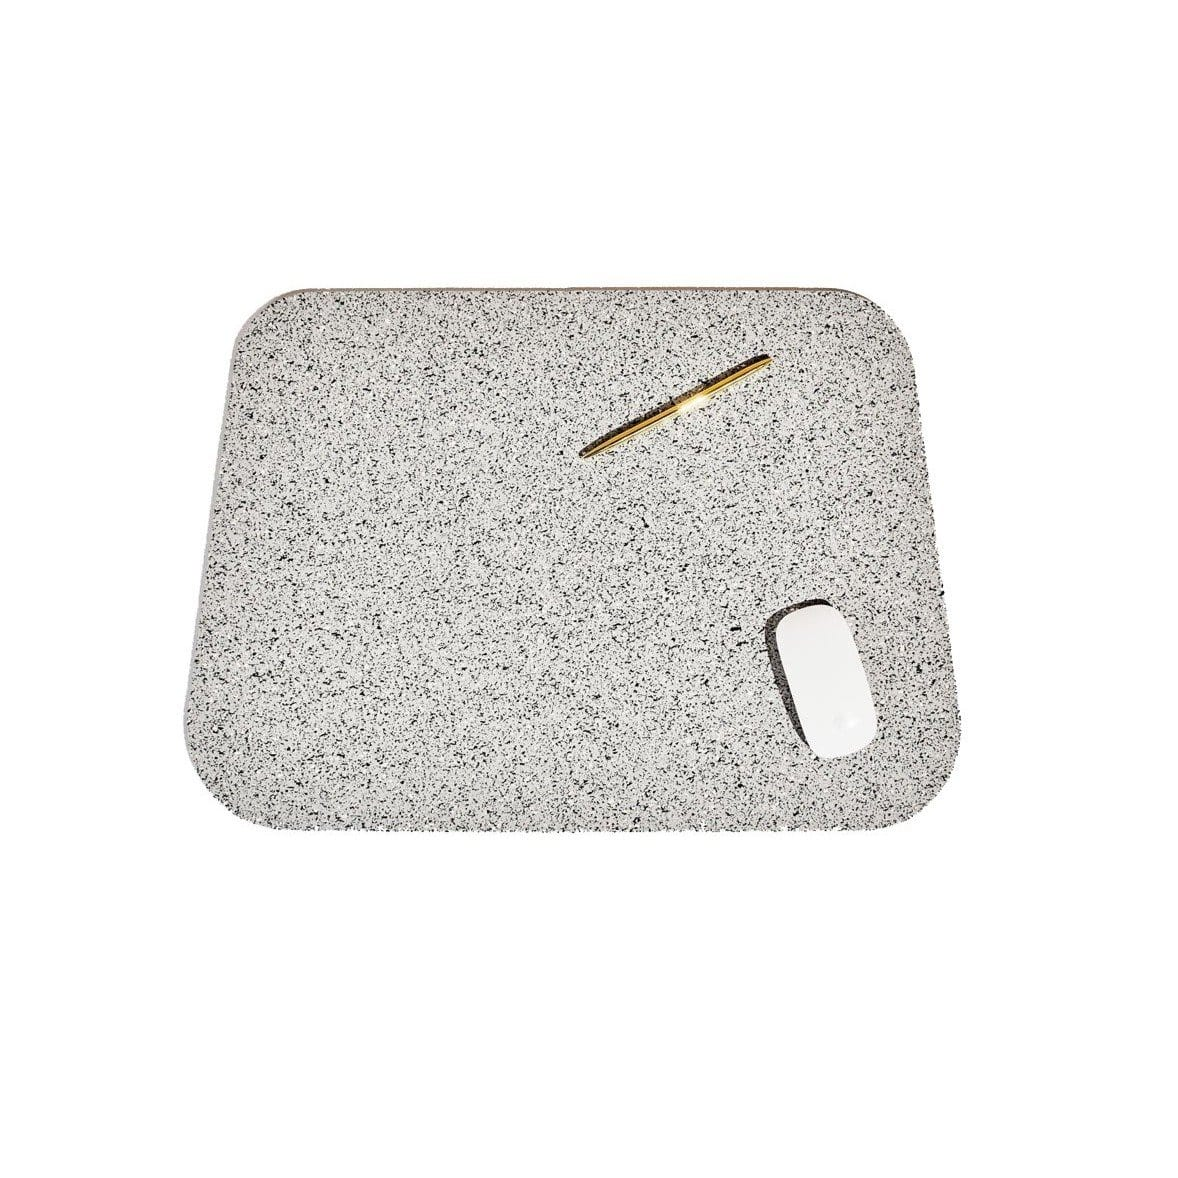 Slash Objects Desk Accessories Gris R2 Deskmat